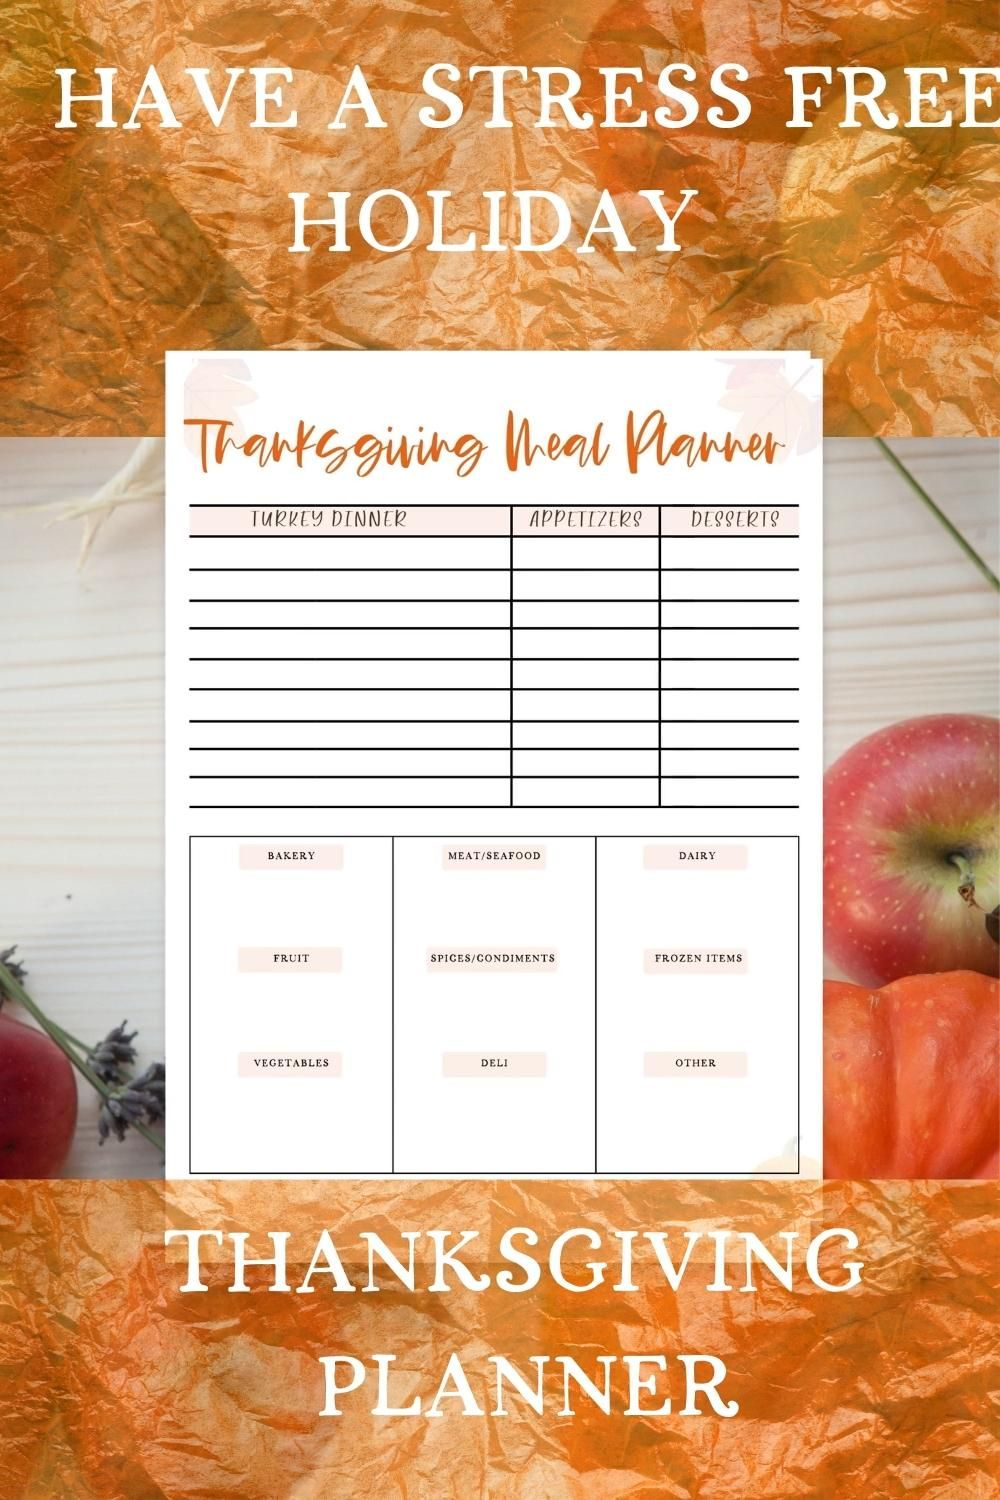 This Thanksgiving Planner comes with a meal planner, grocery list, meal prep page, and a ten day overview of your Thanksgiving week. No need to be stressed during the holiday. Plan ahead to for a stress-free Thanksgiving.